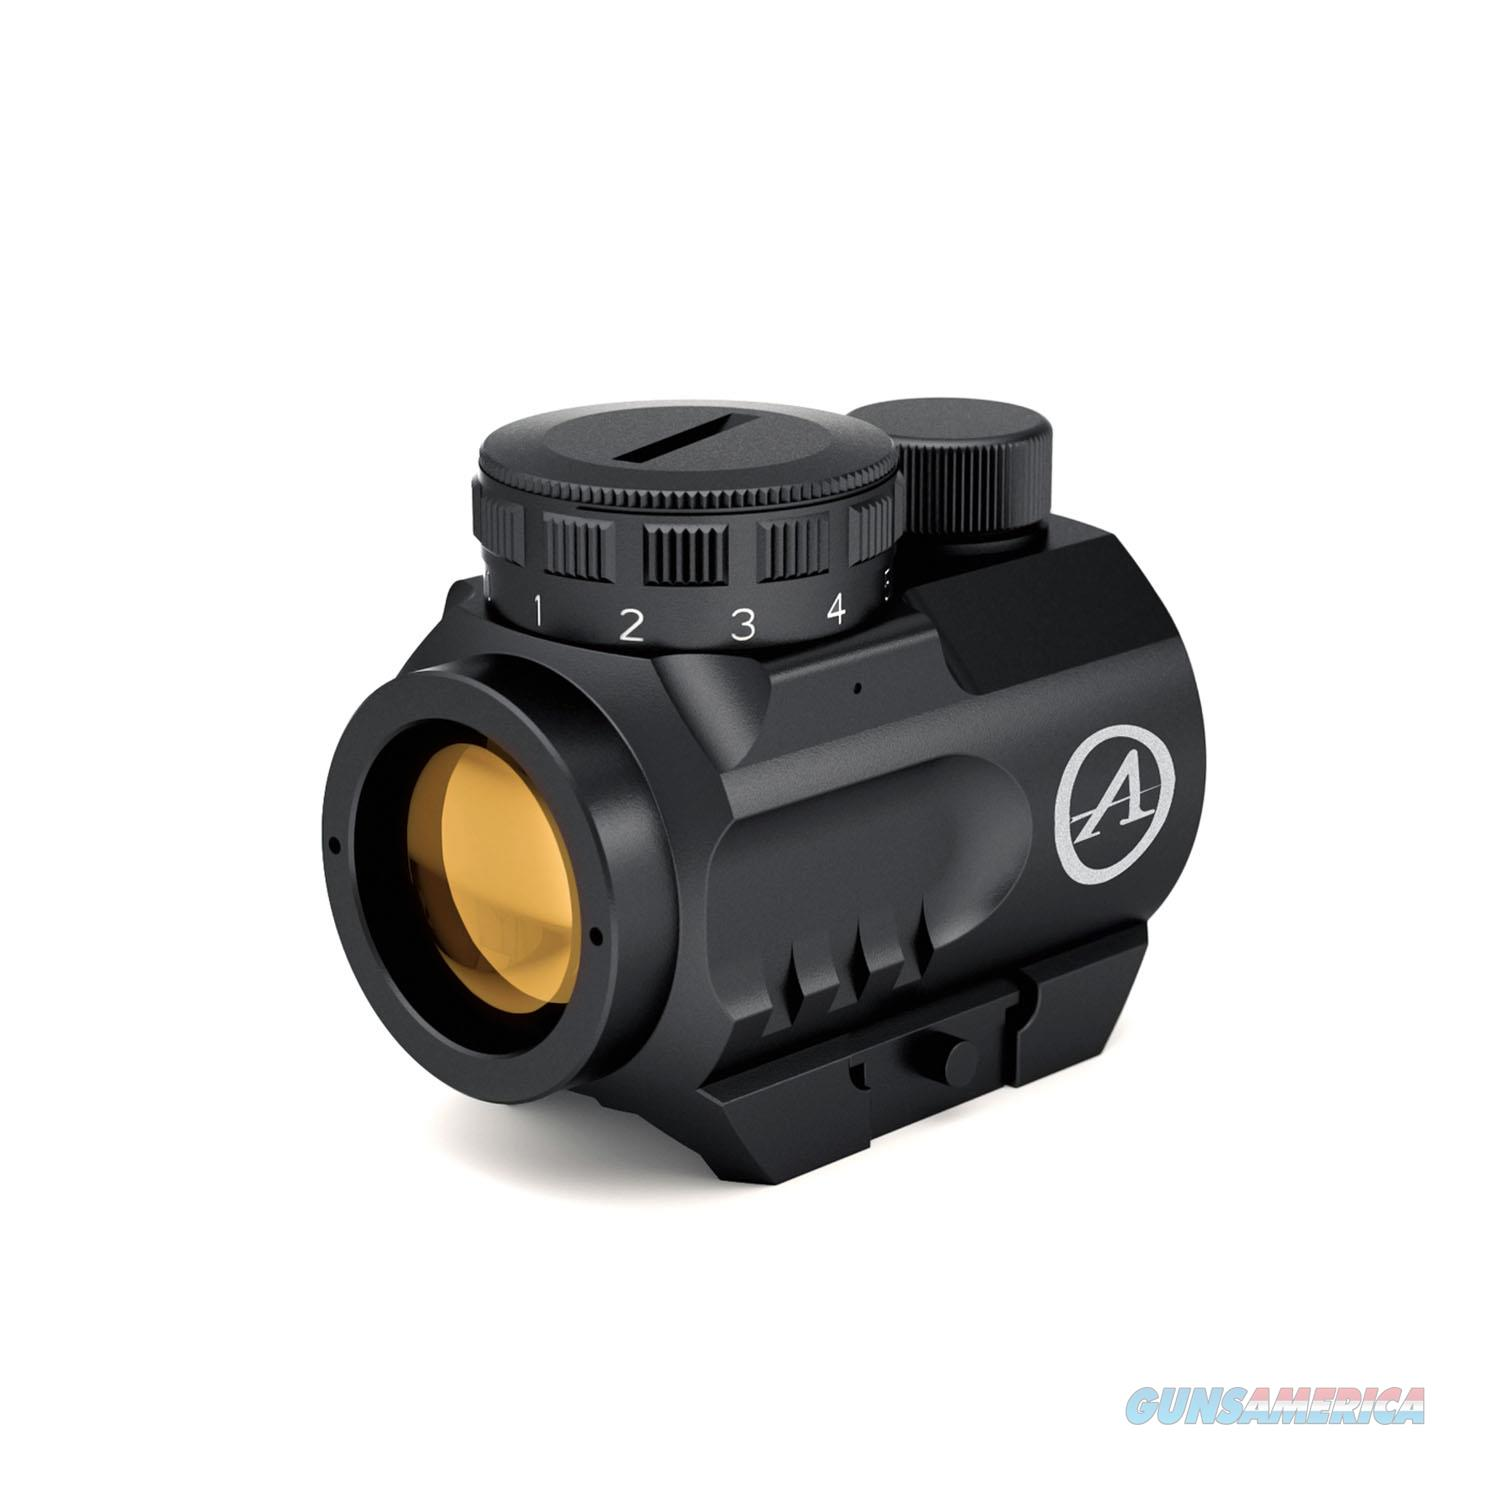 Athlon Midas Btr Red Dot Sight 403011  Non-Guns > Iron/Metal/Peep Sights